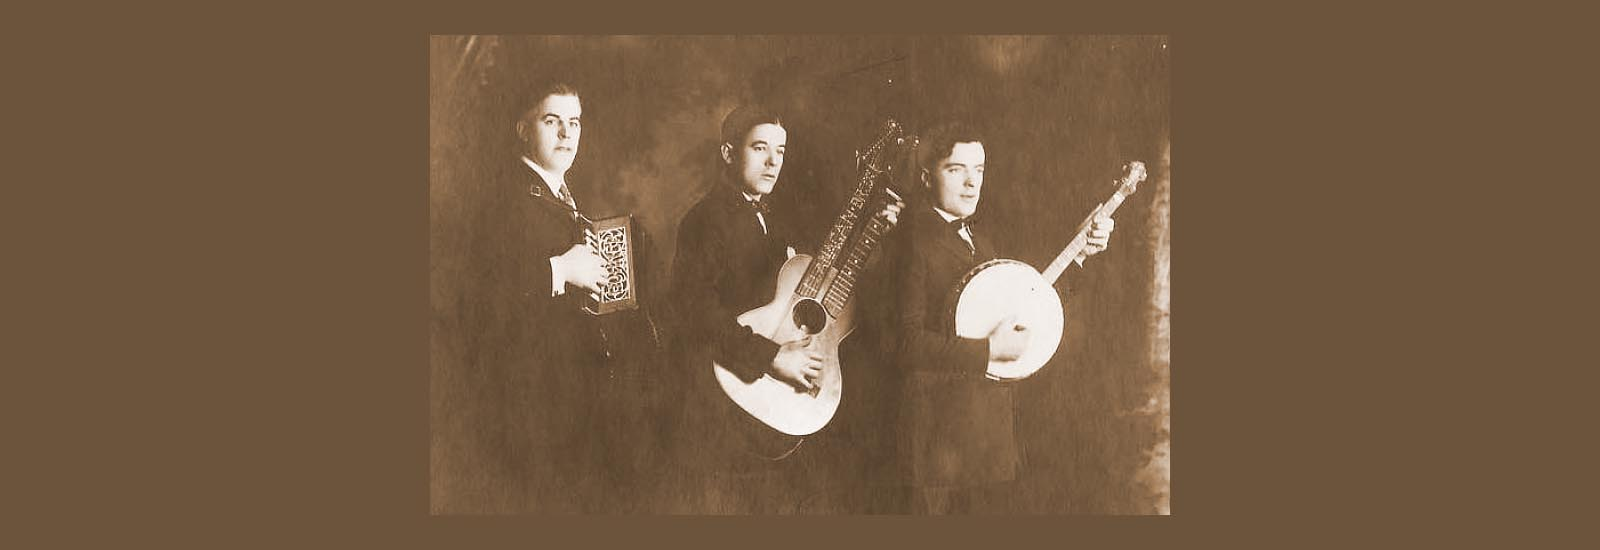 The Magnificent Flanagan Brothers - Ward Irish Music Archives